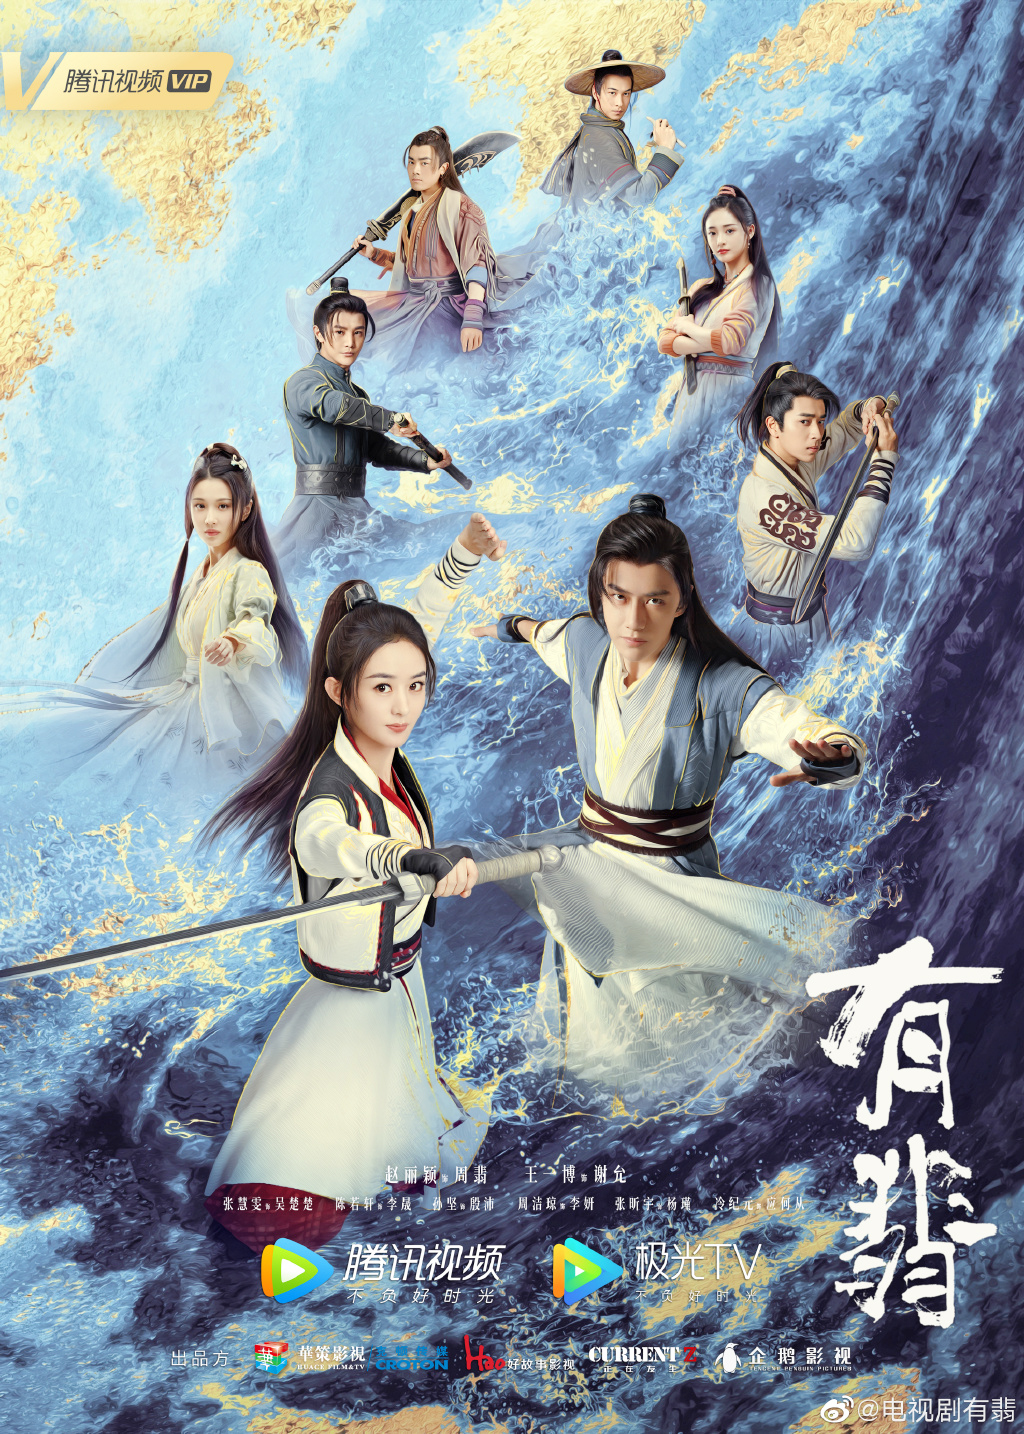 Legend of Fei, 有翡, Chinese Drama, China Huace TV, China Zone, 剧乐部, 腾讯视频, iQIYI, 爱奇艺, Tencent Video